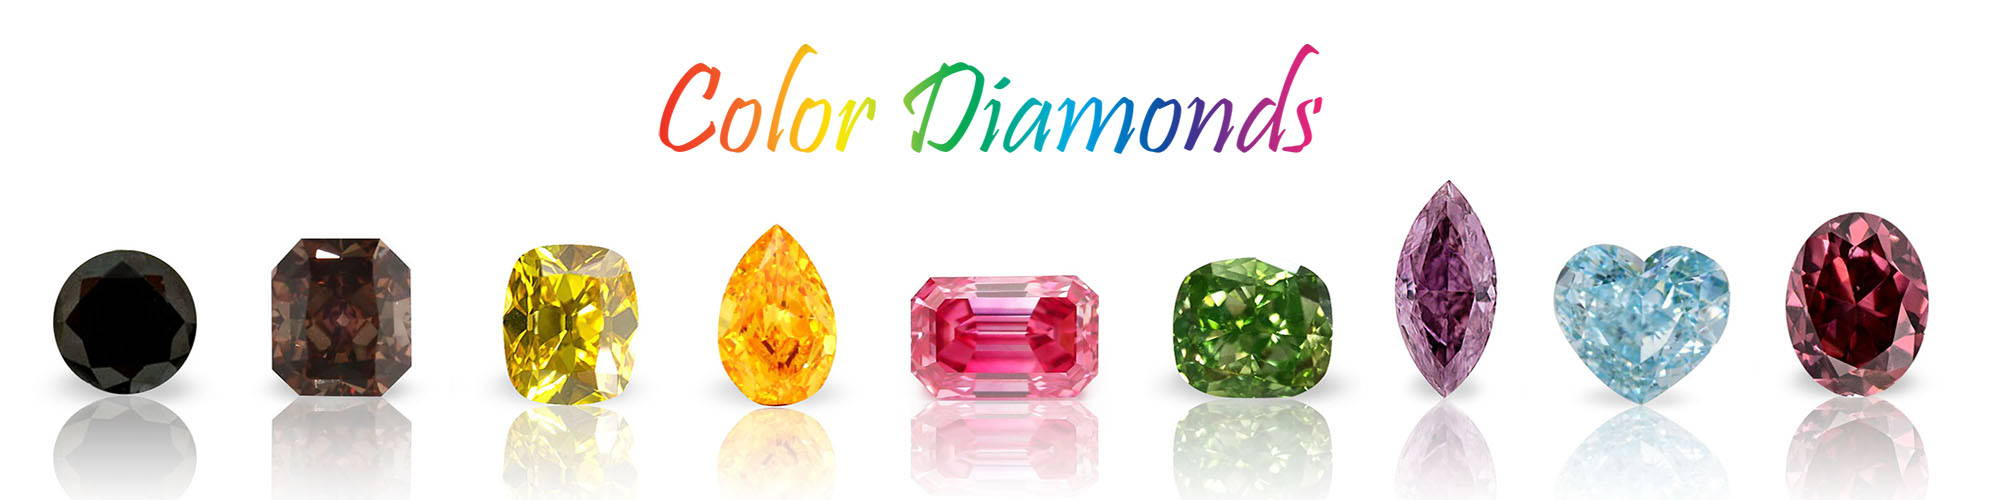 intensity color fancy education diamond diamonds m about categories geller